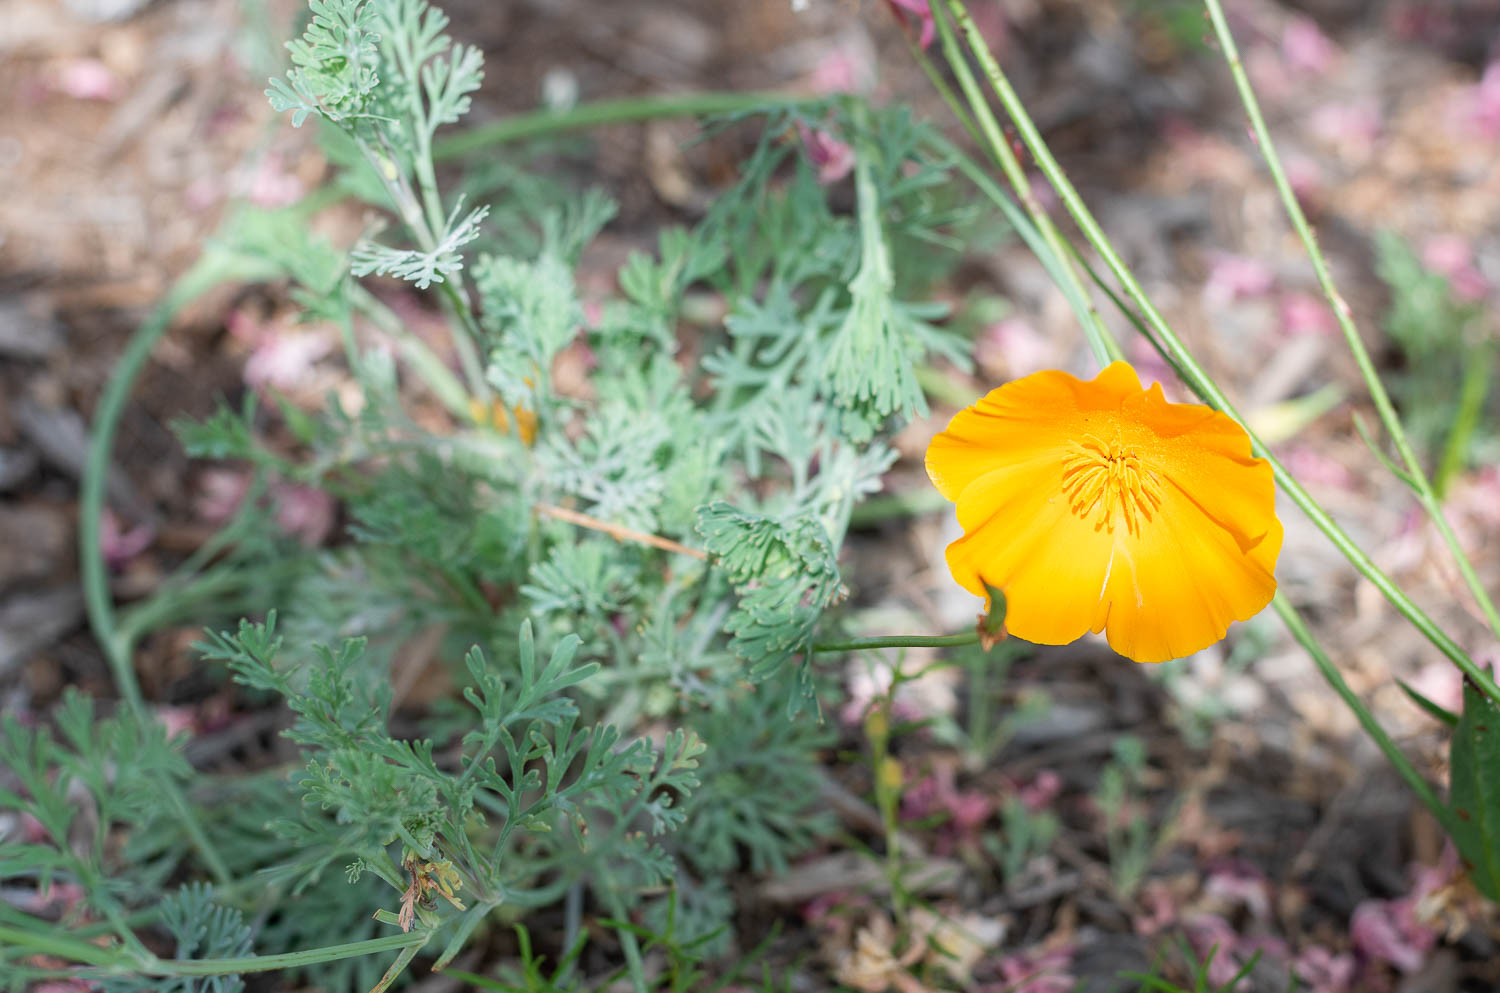 California Poppy - This photo I managed to get doesn't do justice to these flowers because they are so pretty in big groups (you've seen the Superbloom, right?). These are all planted by seed and pop up in the springtime. We sprinkled them in the fall of 2016 and they bloomed like crazy for the next two years. But we didn't have as many blooms in 2019, so it's time to sprinkle more seeds for next year.